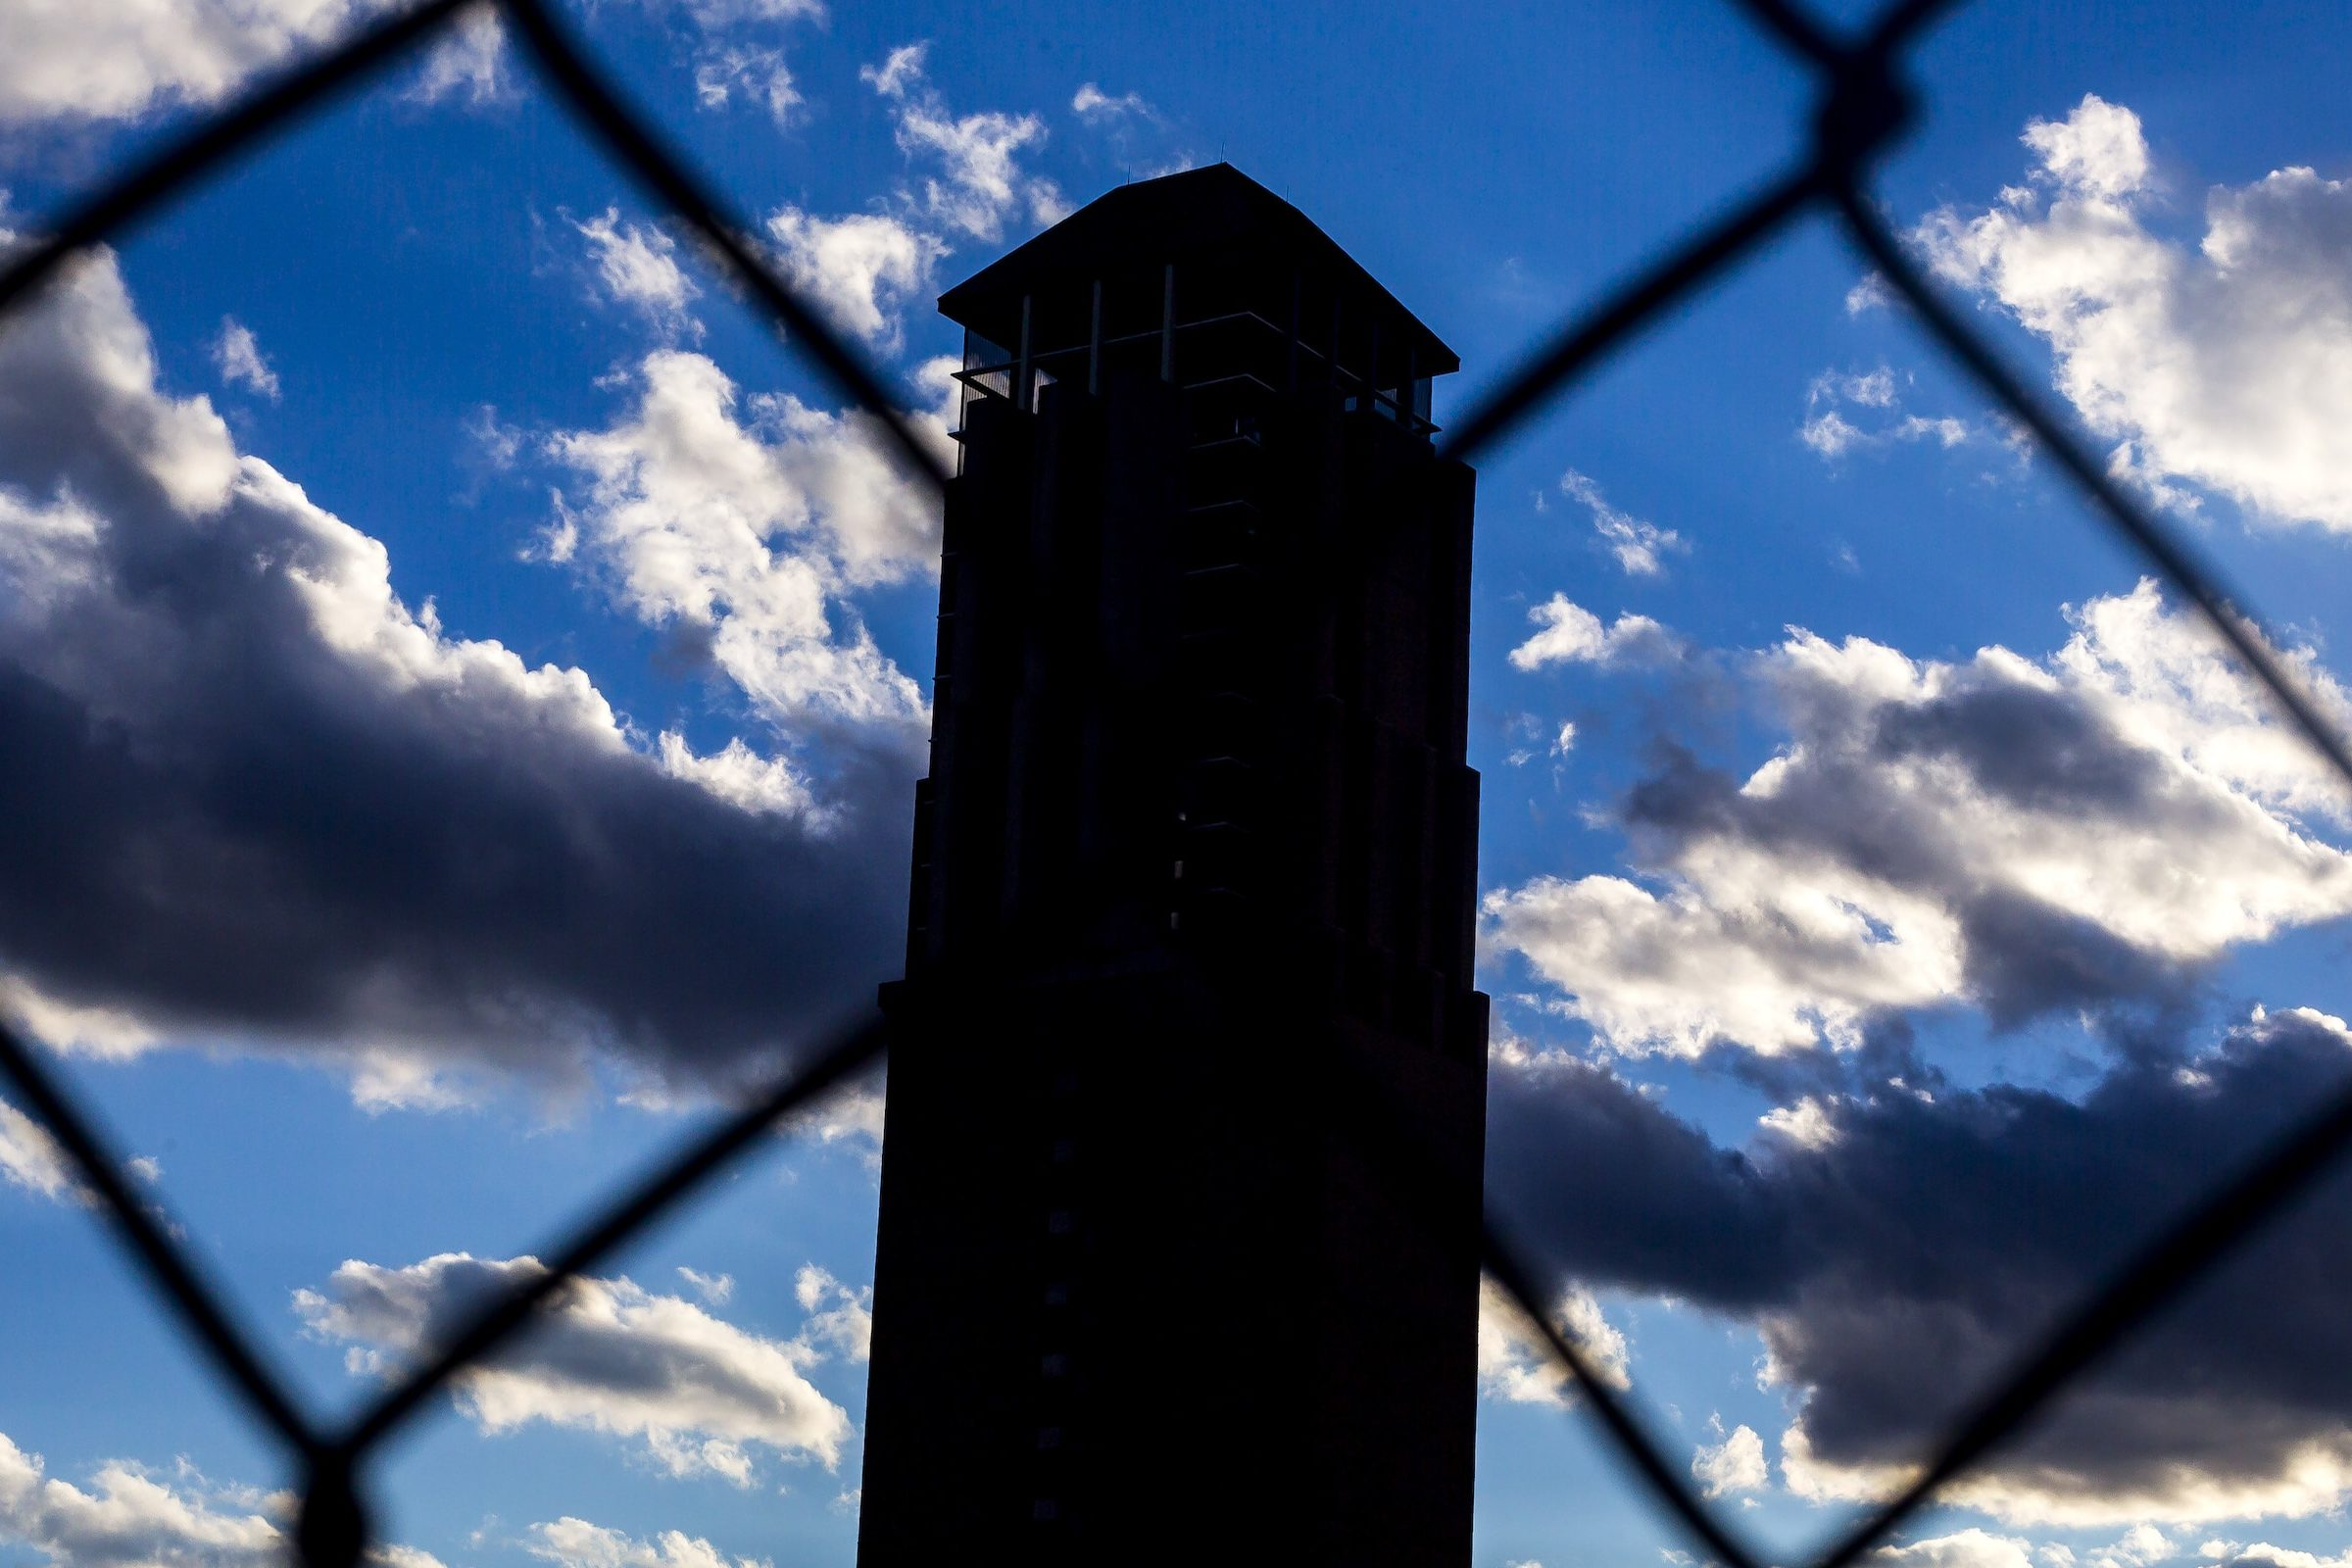 tower behind a fence with clouds in the dark sky